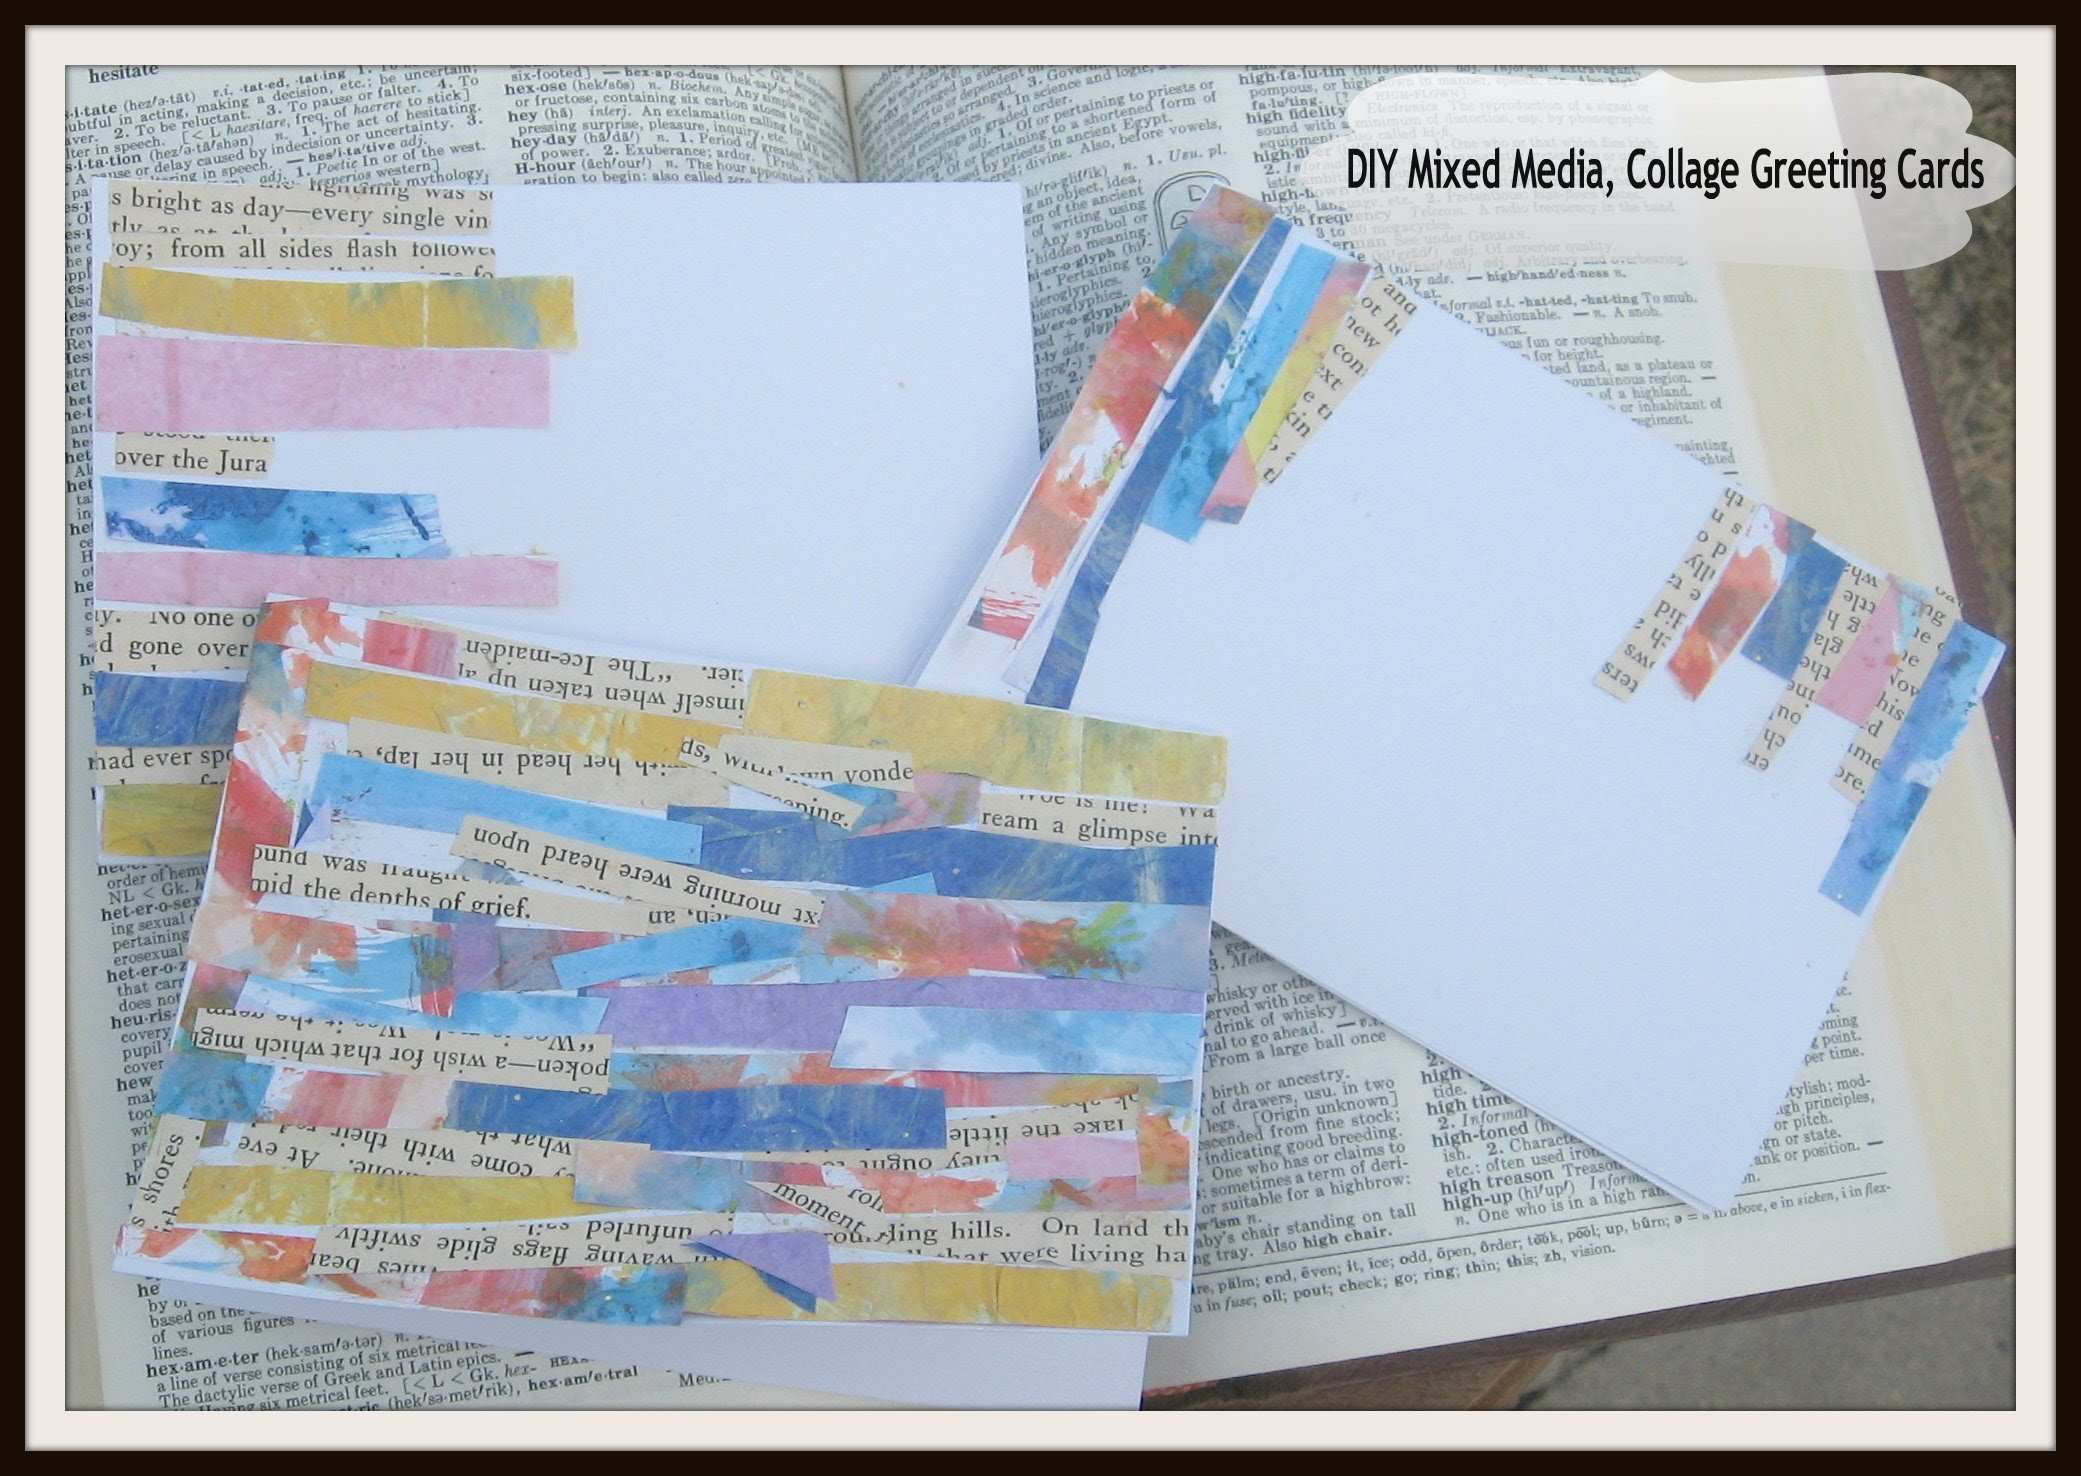 DIY Mixed Media Art Collage Greeting Cards Mixed Media Collage